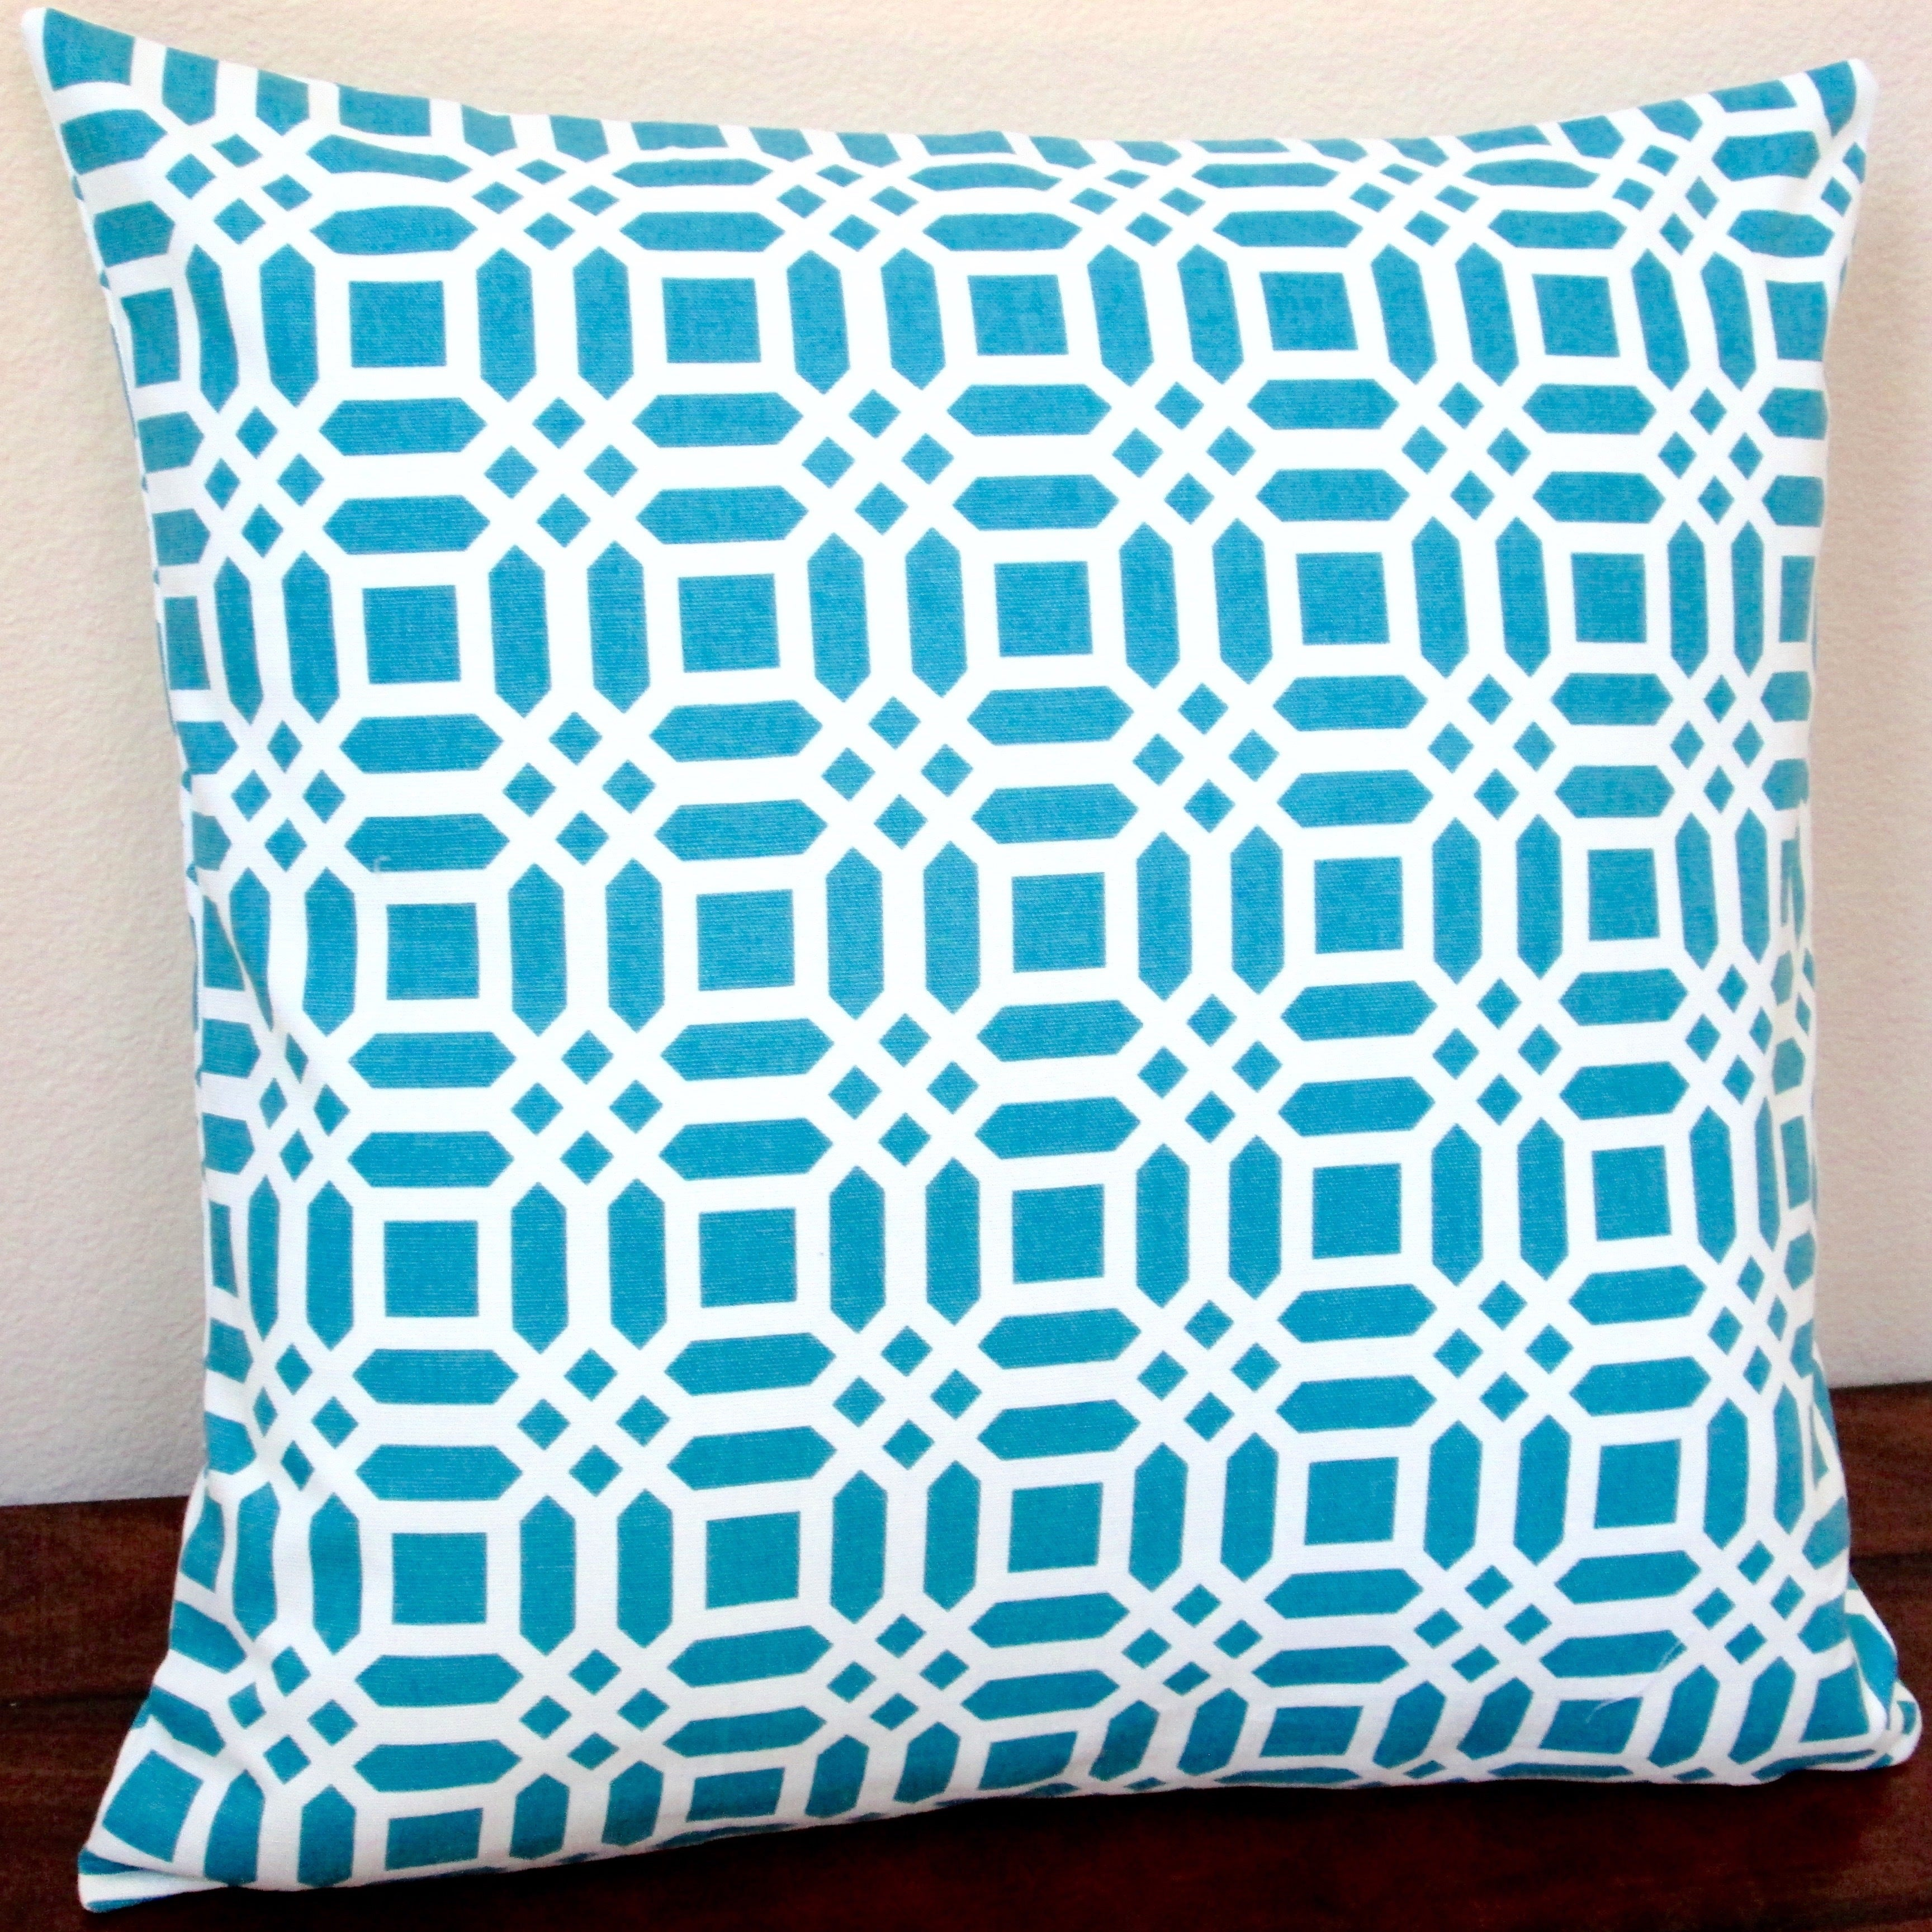 Pillows Indoor 20 Inch Lattice In Teal Blue Throw Pillow Cover